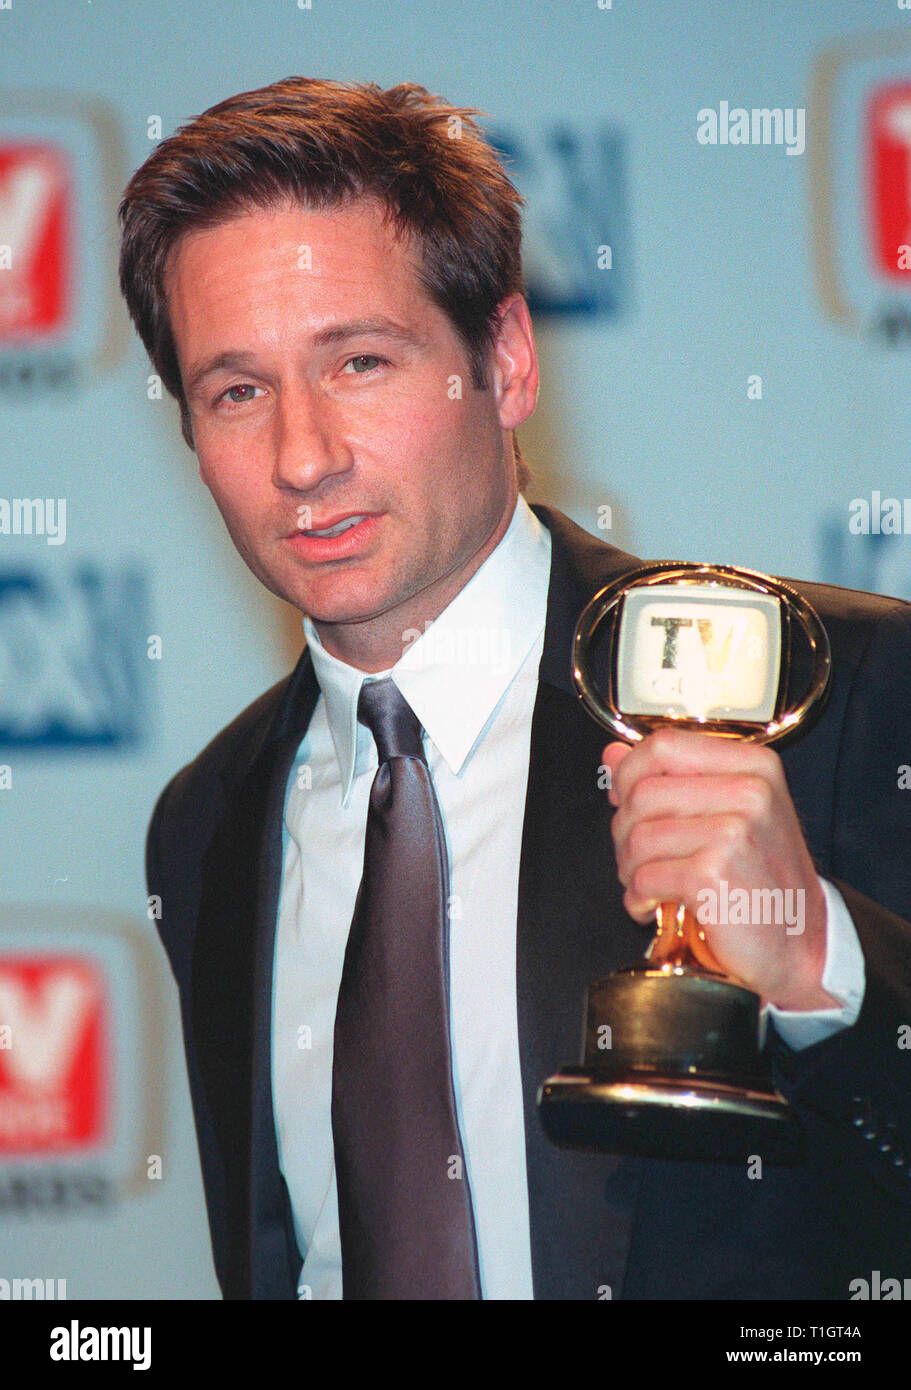 LOS ANGELES, CA - February 1, 1999:  'X-Files' star DAVID DUCHOVNY at the 1st Annual TV Guide Awards in Los Angeles. He show won for Favorite Actor in a Drama Series. © Paul Smith / Featureflash - Stock Image